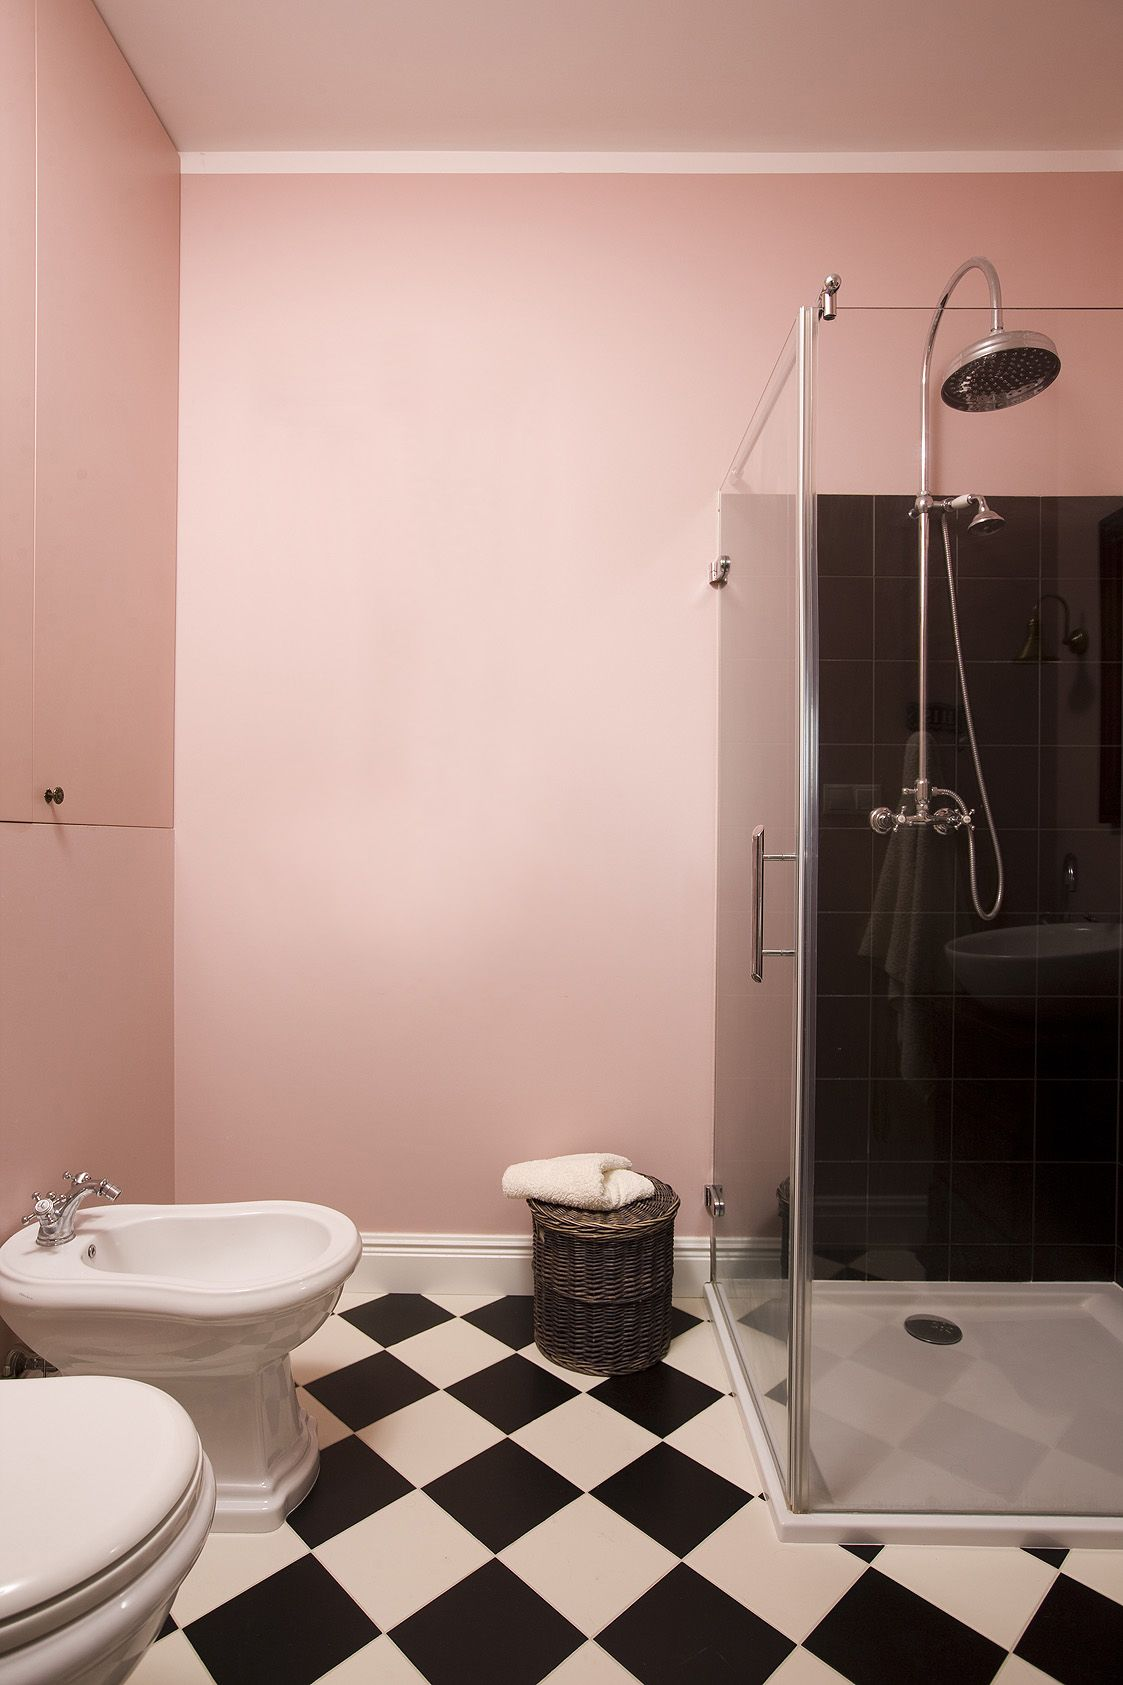 Pink Eclectic Bathroom With Black And White Floor Checker Floor Balck And White Floor Black Shower Pin Pink Bathroom Black Bathroom Floor Eclectic Bathroom